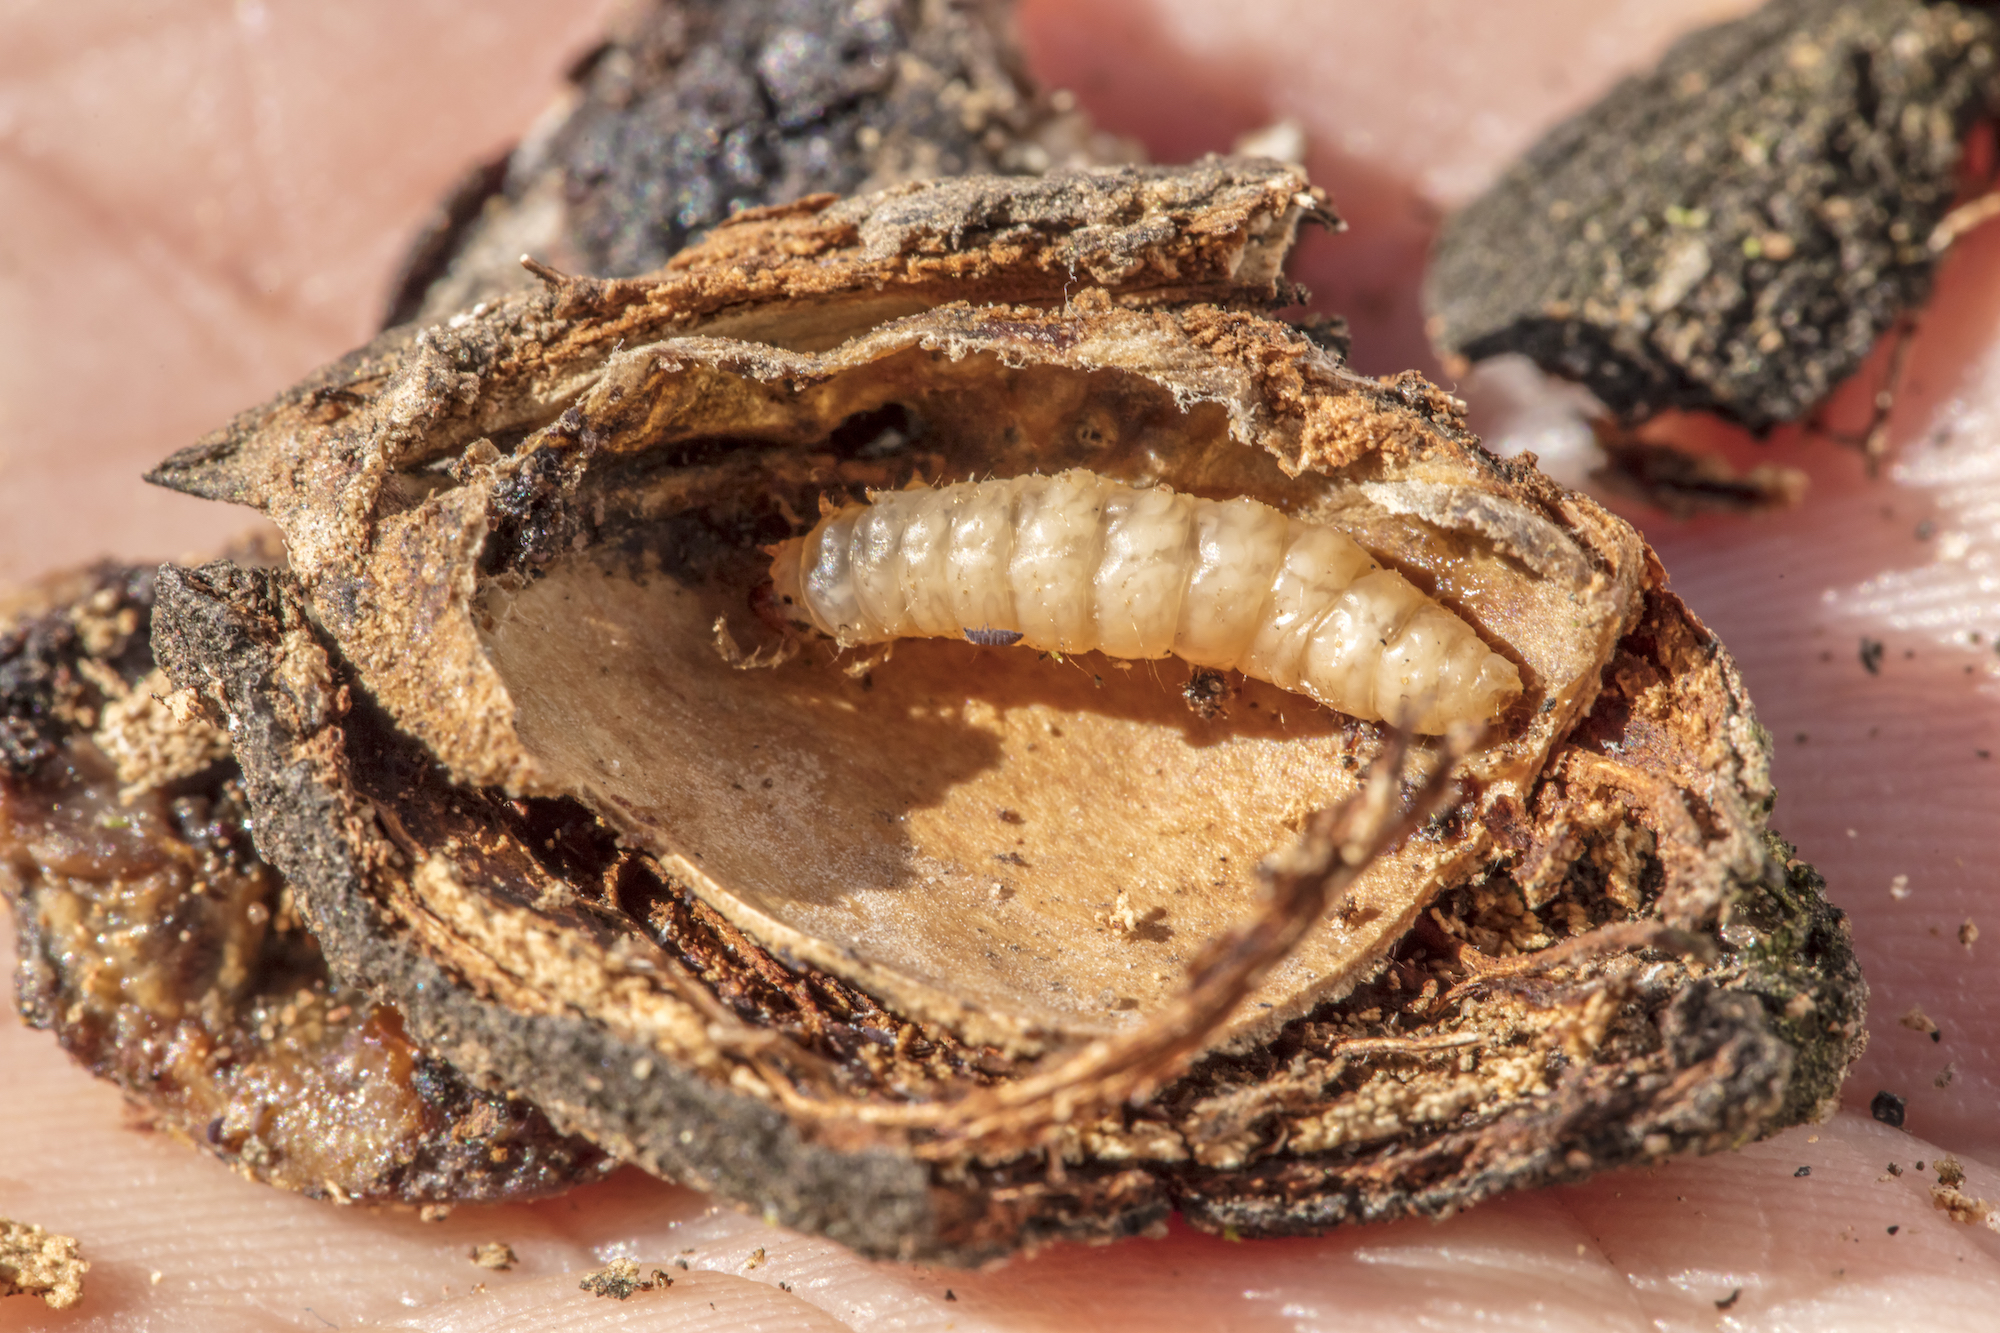 Semios Introduces First Aerosol Organic Pheromone for the Control of Navel Orangeworm in Almond, Pistachio, Walnut, and Fig Crops